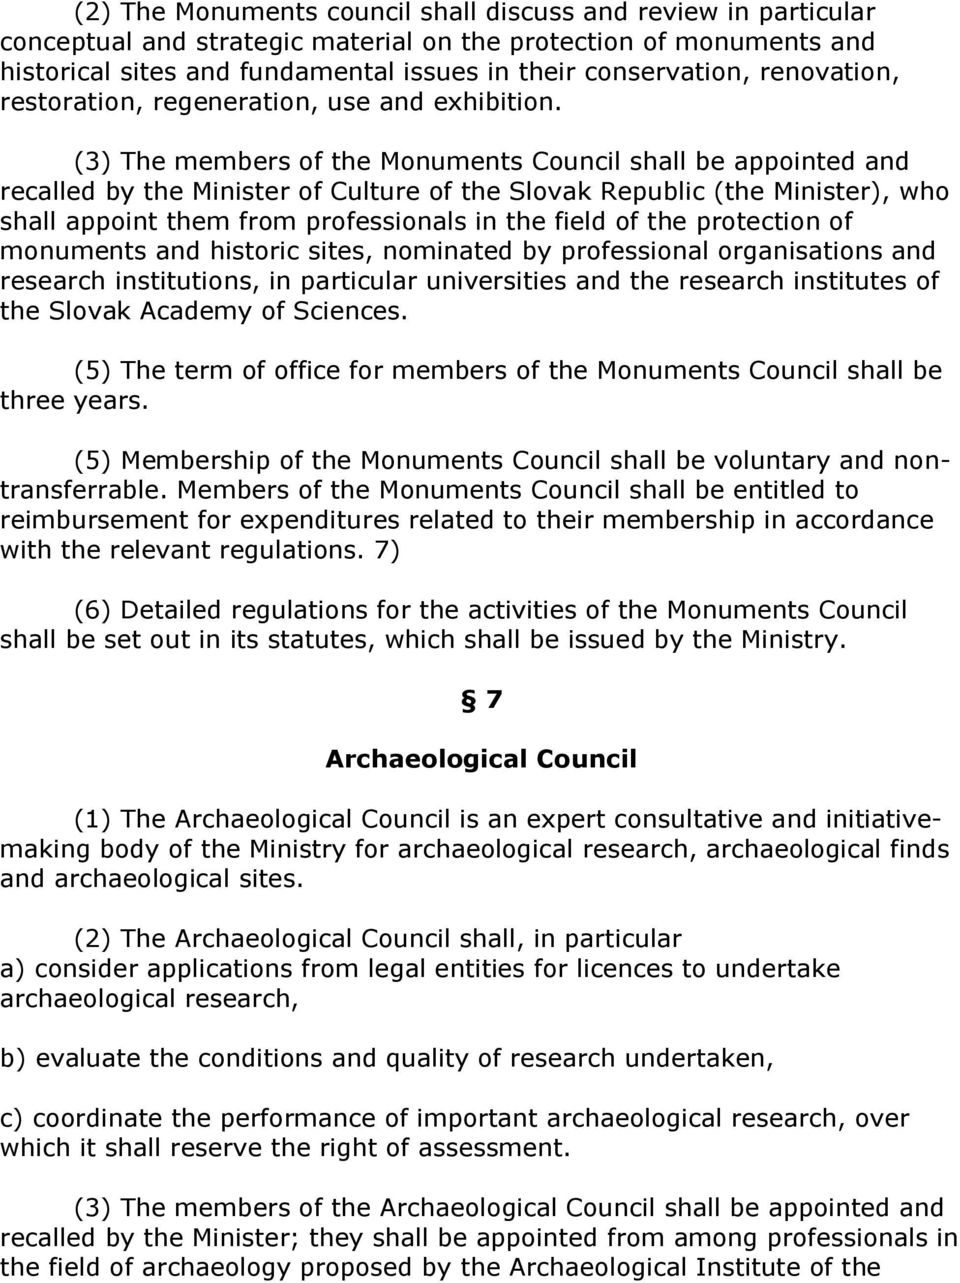 (3) The members of the Monuments Council shall be appointed and recalled by the Minister of Culture of the Slovak Republic (the Minister), who shall appoint them from professionals in the field of